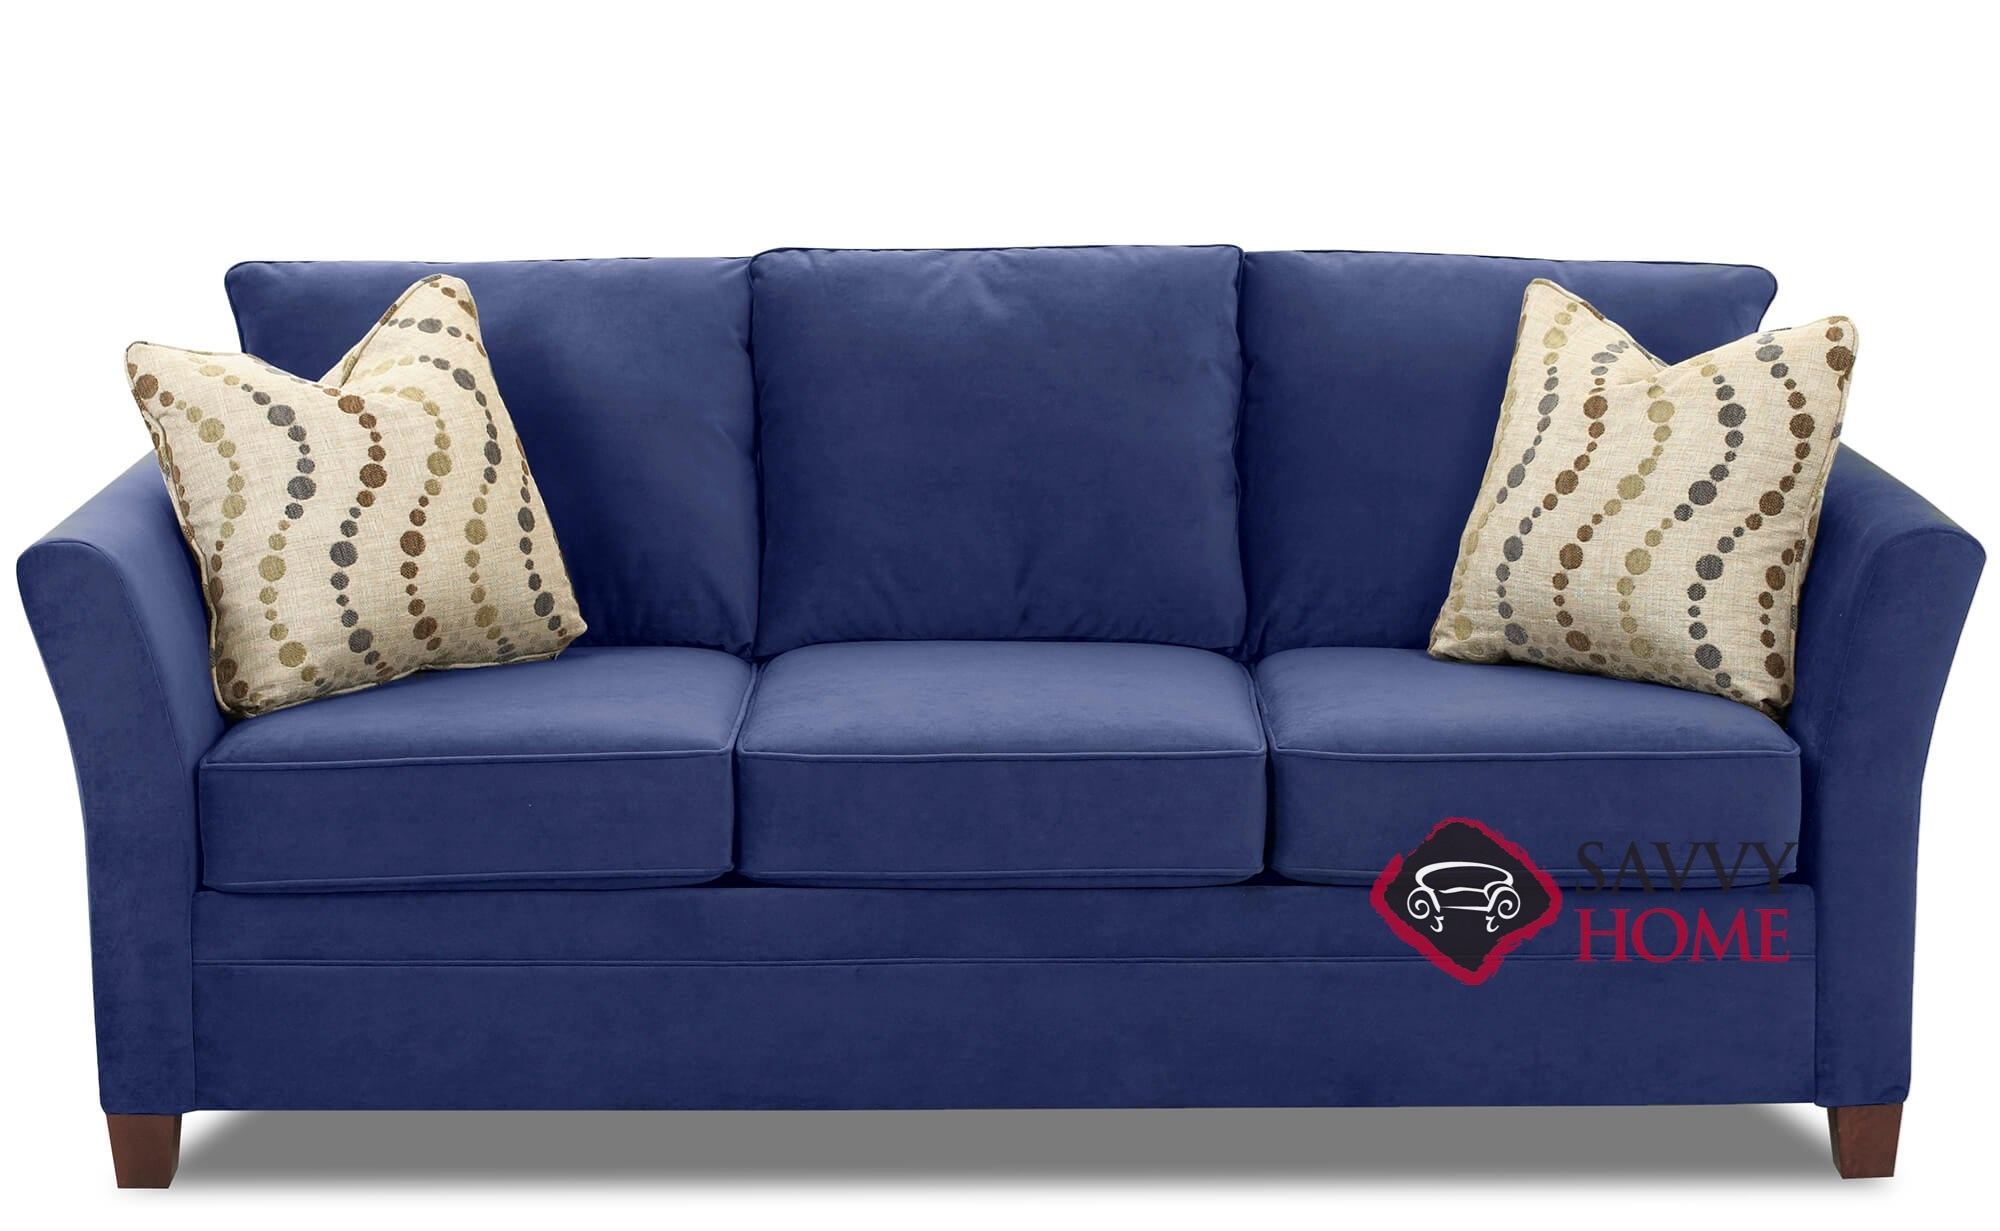 Picture of: Quick Ship Murano Fabric Sleeper Sofas Queen In Belsire Navy By Savvy With Fast Shipping Savvyhomestore Com